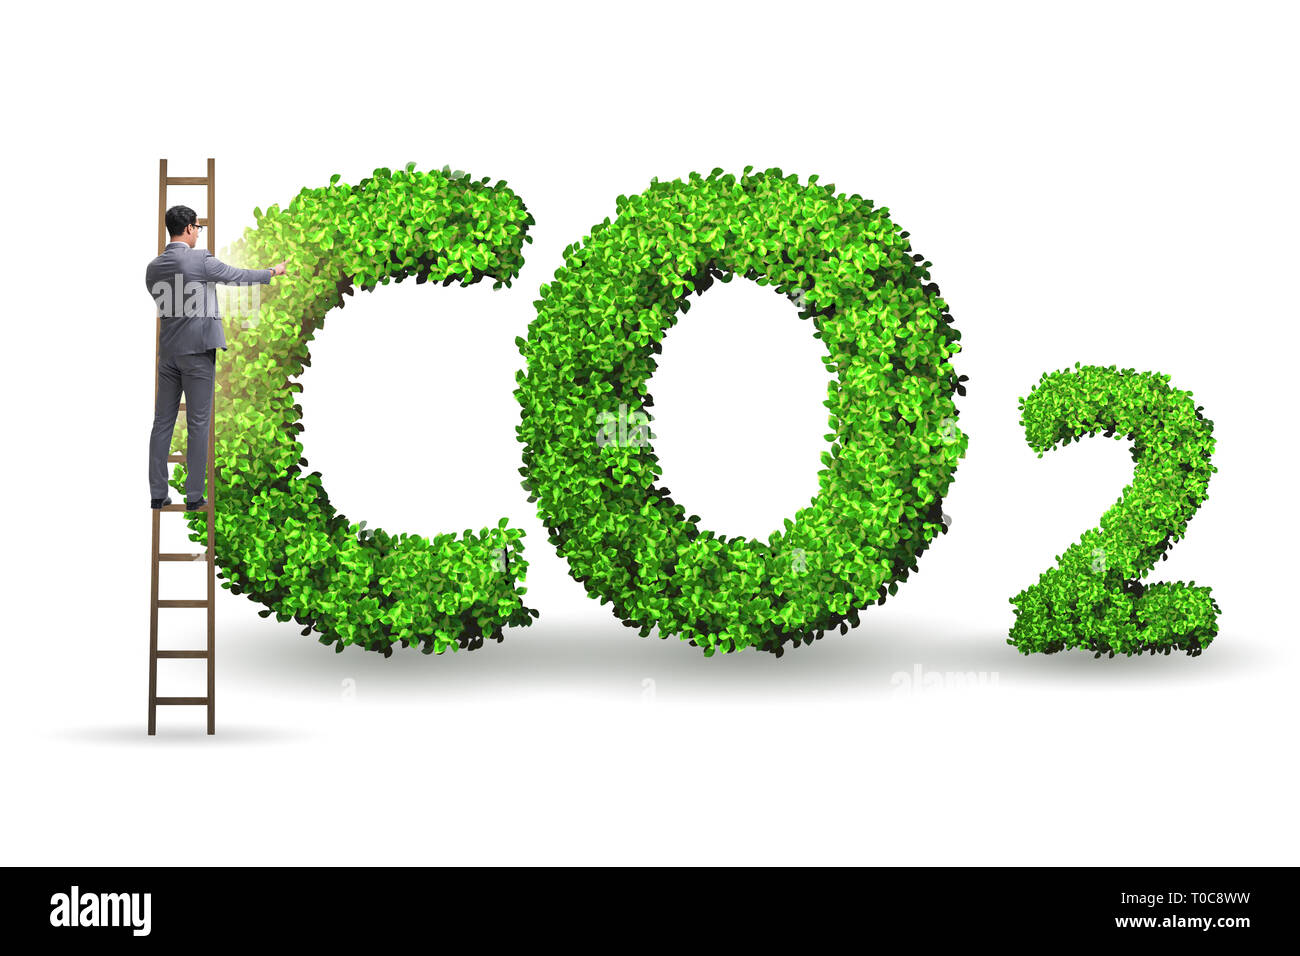 Ecological concept of greenhouse gas emissions - Stock Image